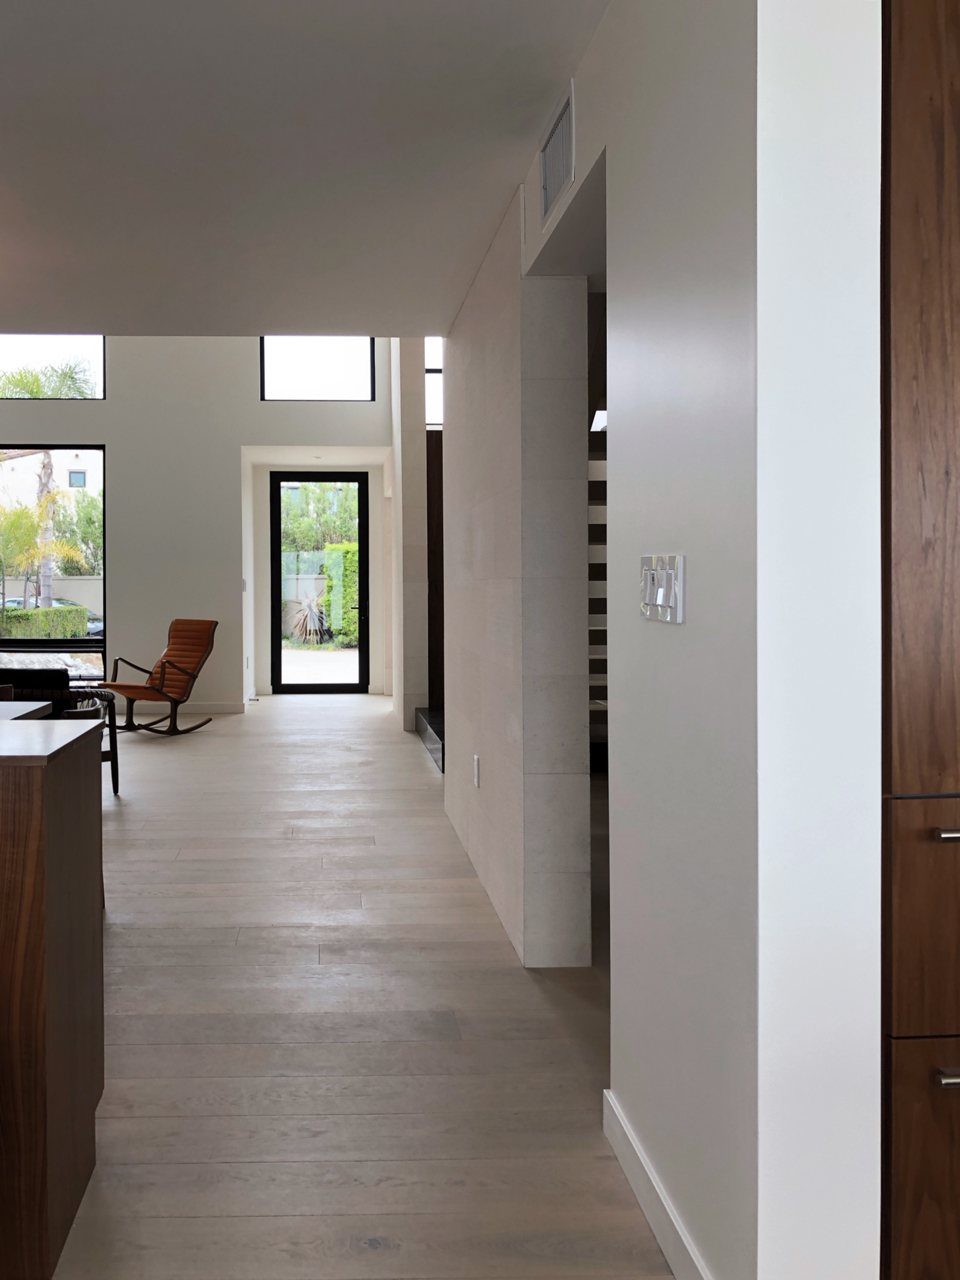 double height addition at entry / view from family room